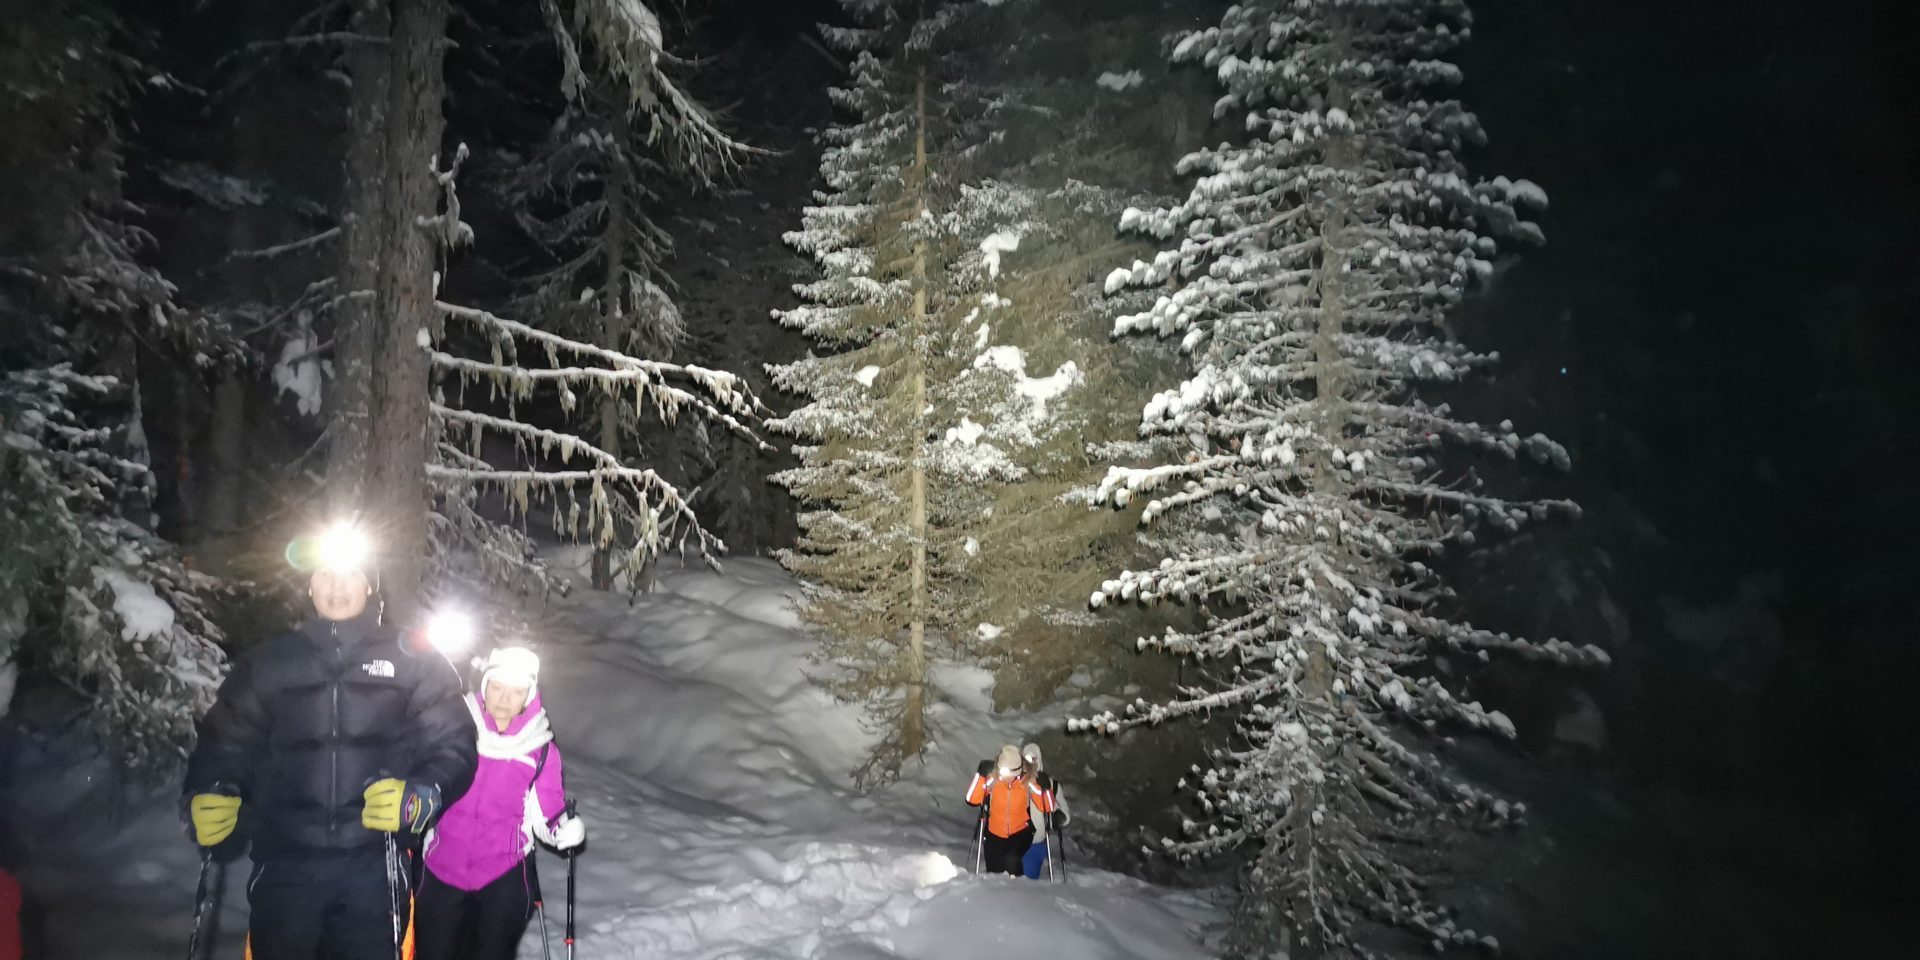 New Year night snowshoes excursion!